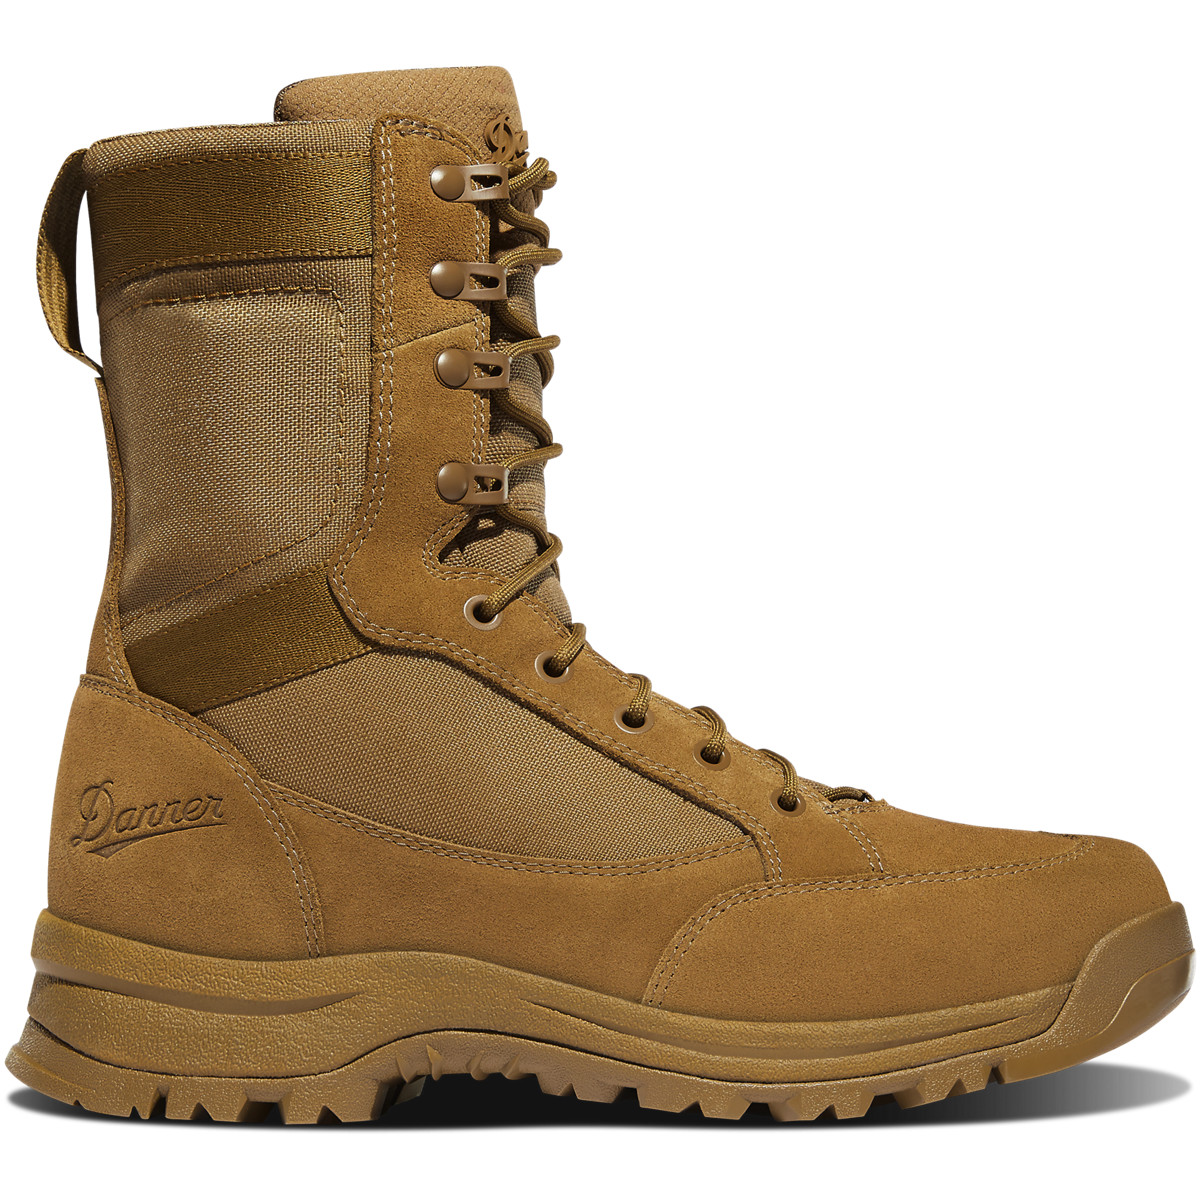 Men's Coyote Danner Tanicus Boots Review – Tactical Footwear images